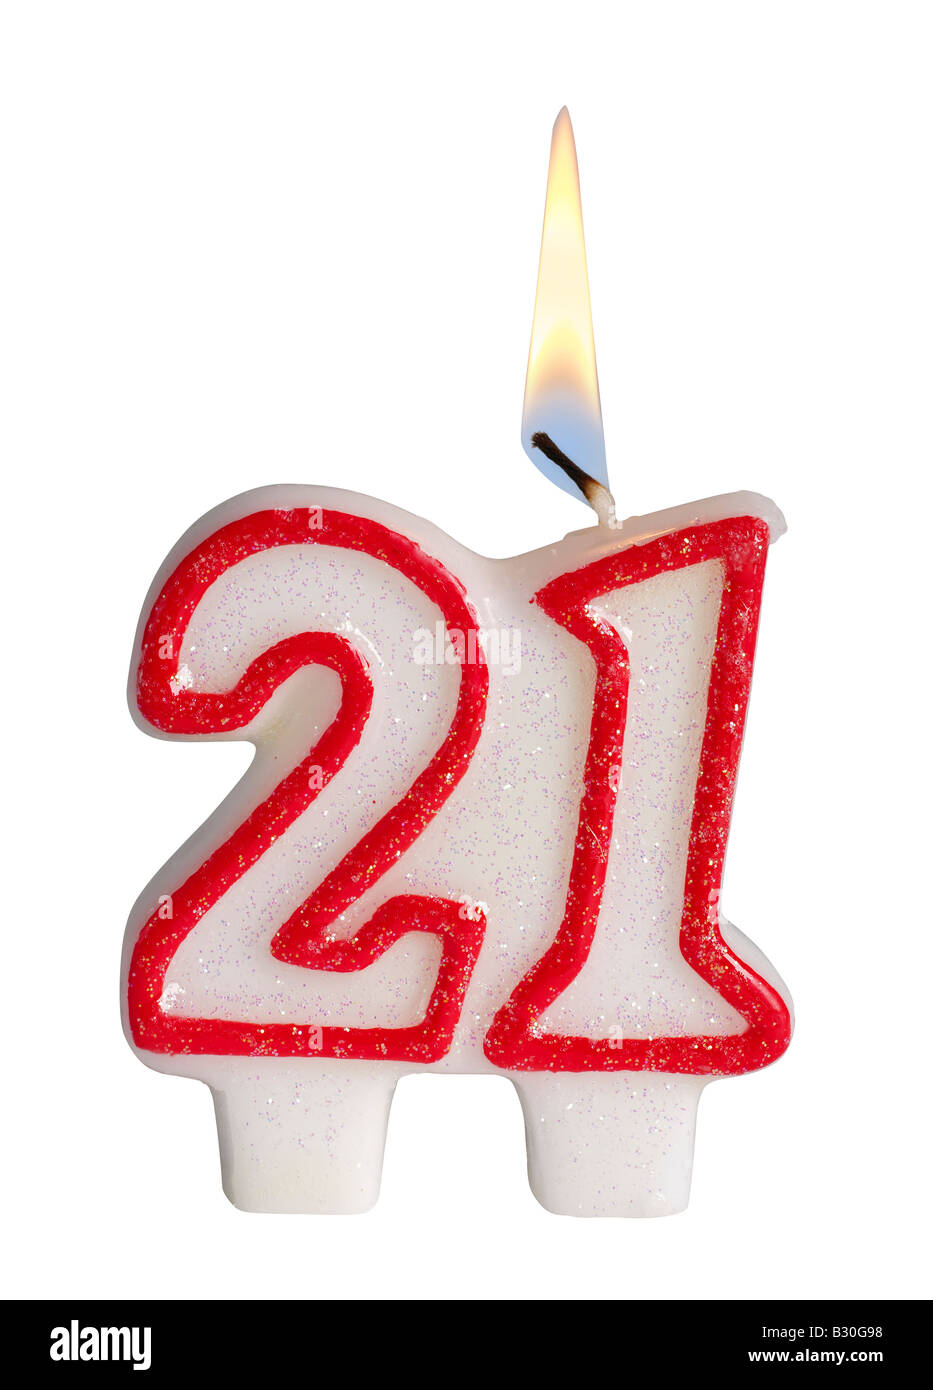 Number 21 candle - Stock Image